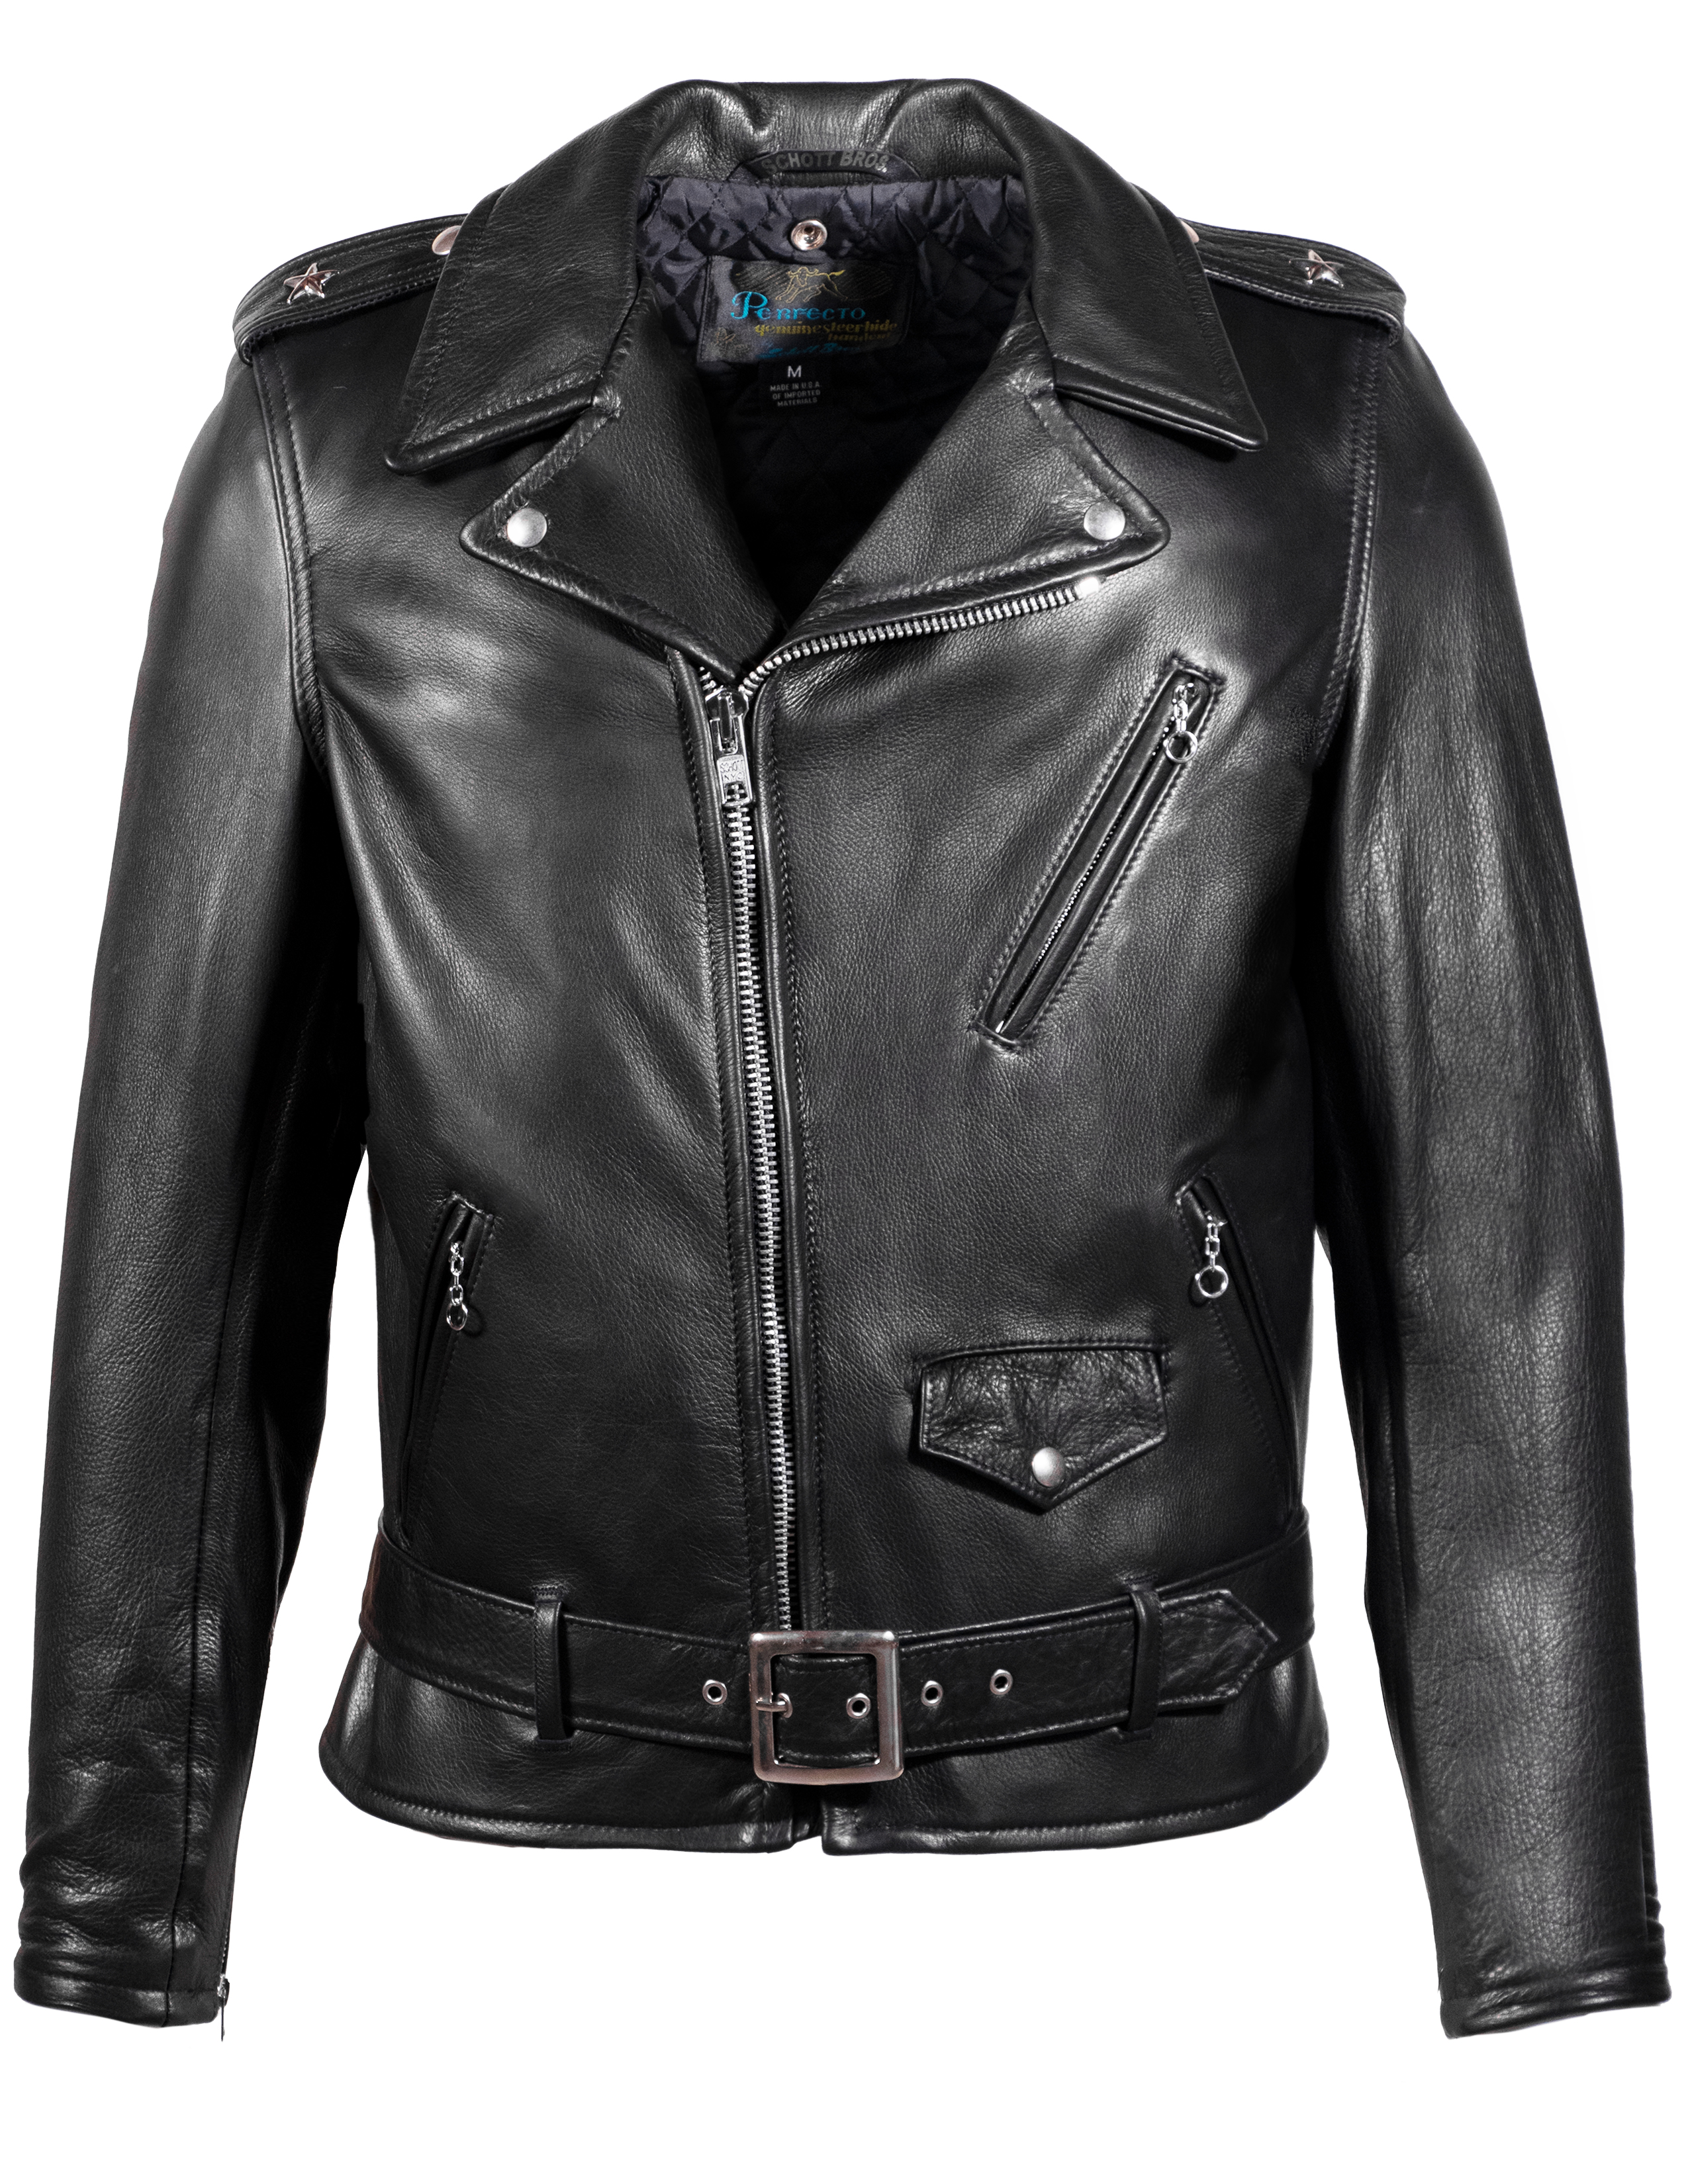 Schott N.Y.C. 519 Waxy Natural Cowhide 50's Perfecto® Motorcycle Leather Jacket